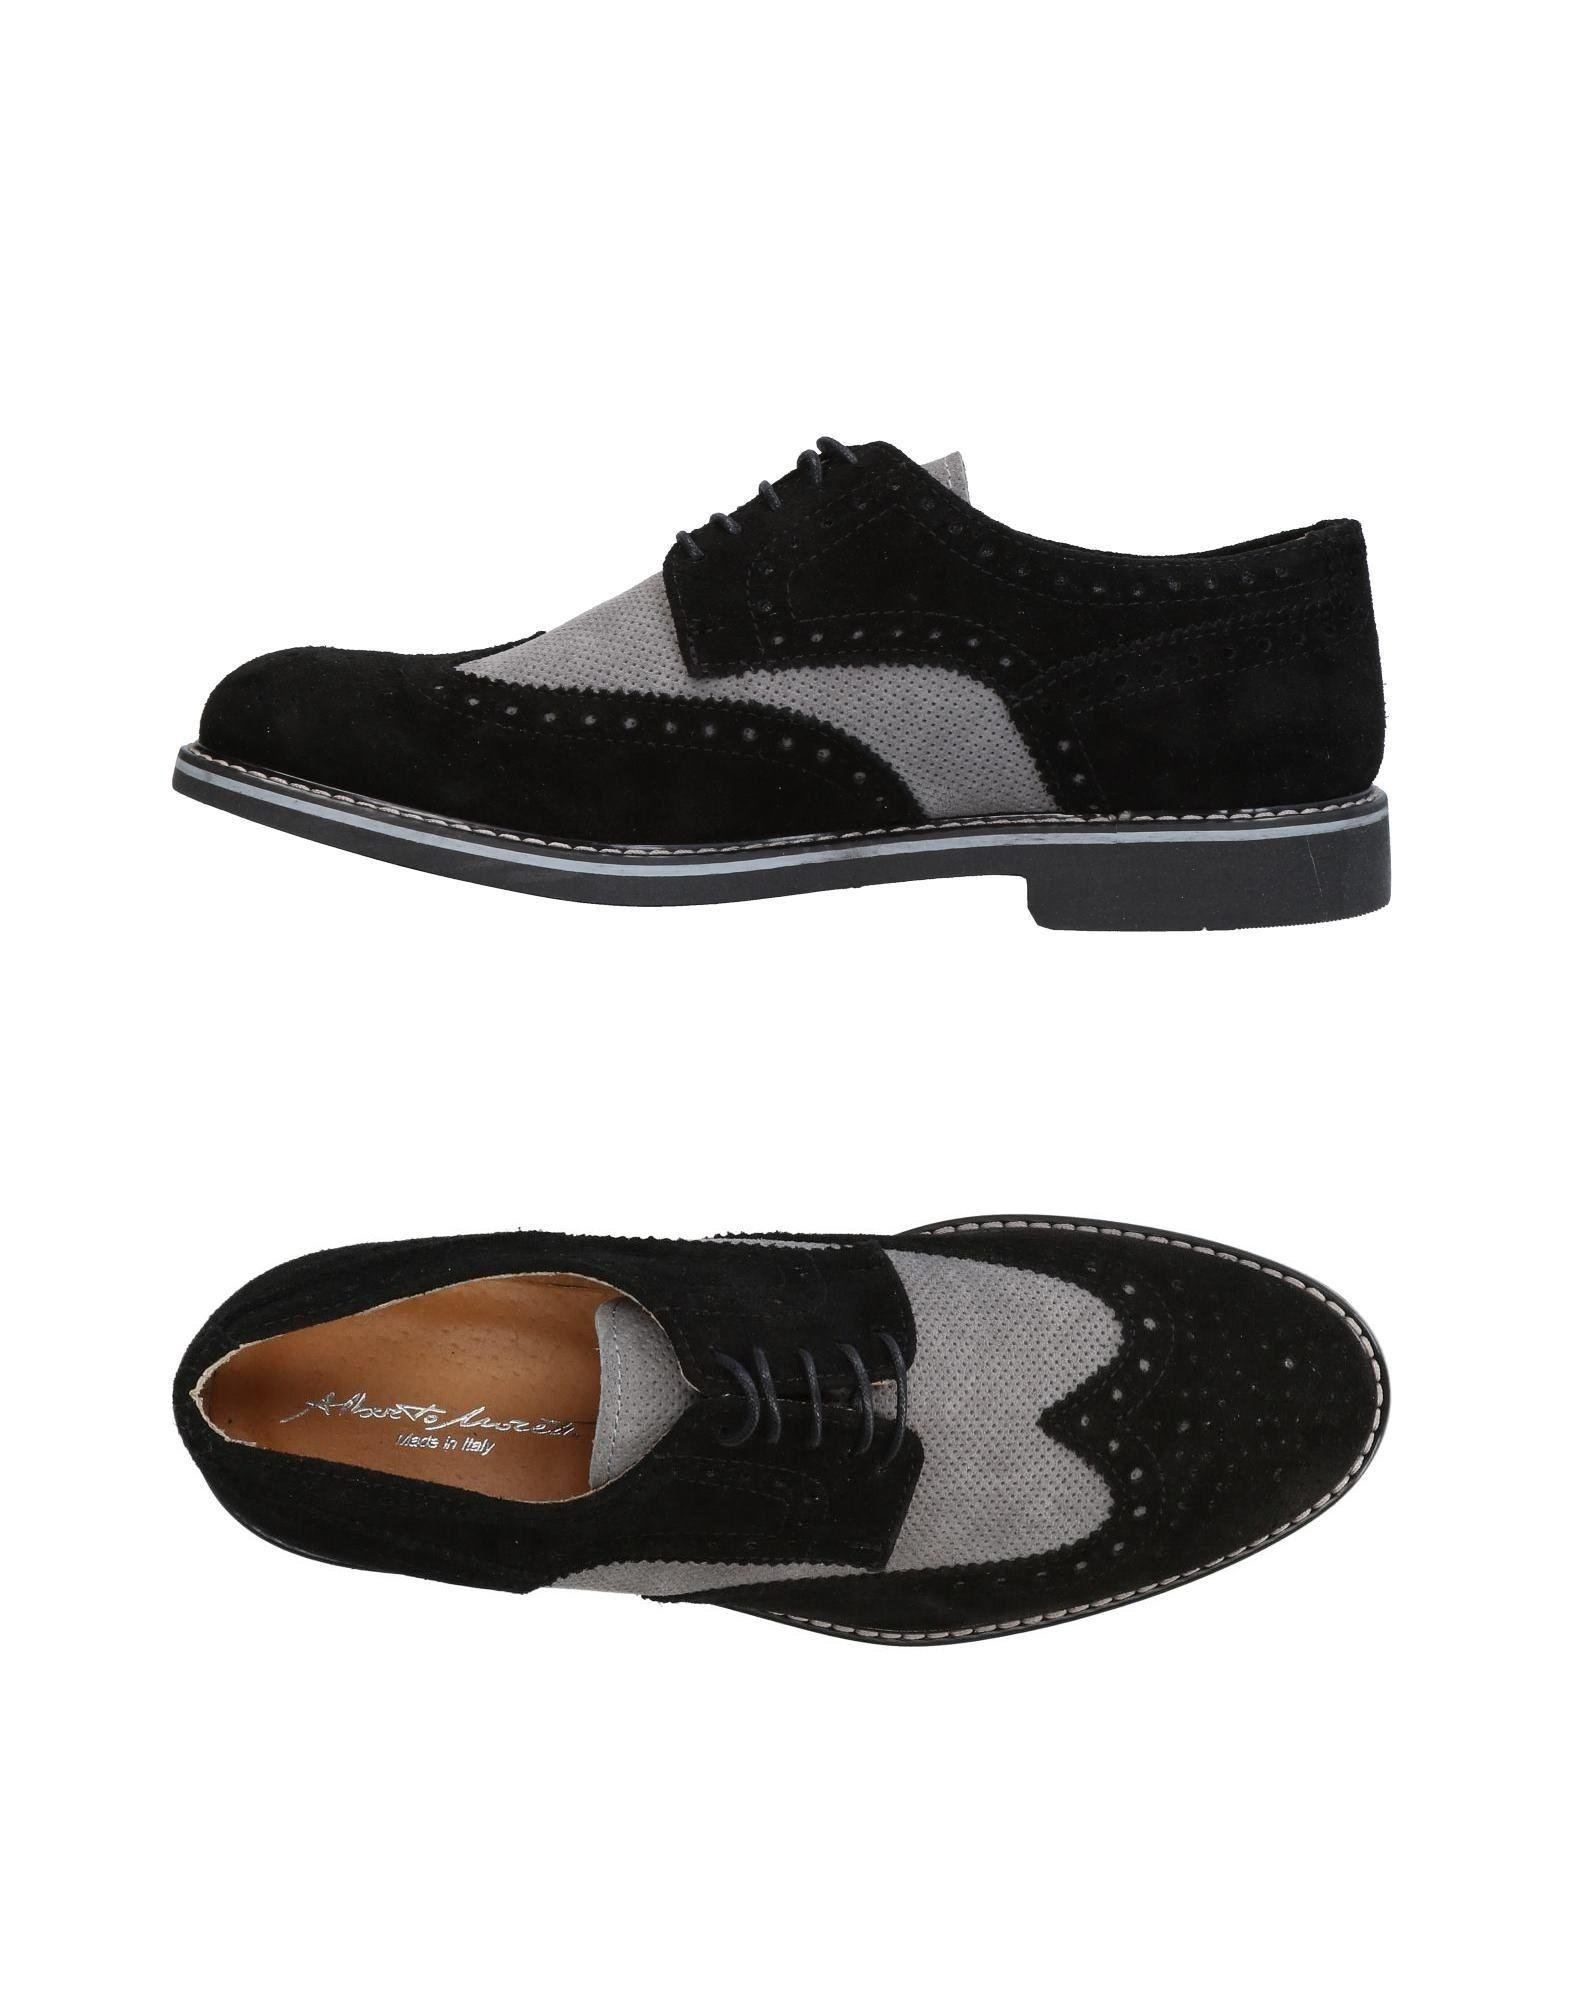 FOOTWEAR - Lace-up shoes Alberto Moretti kehD7ZxSVs